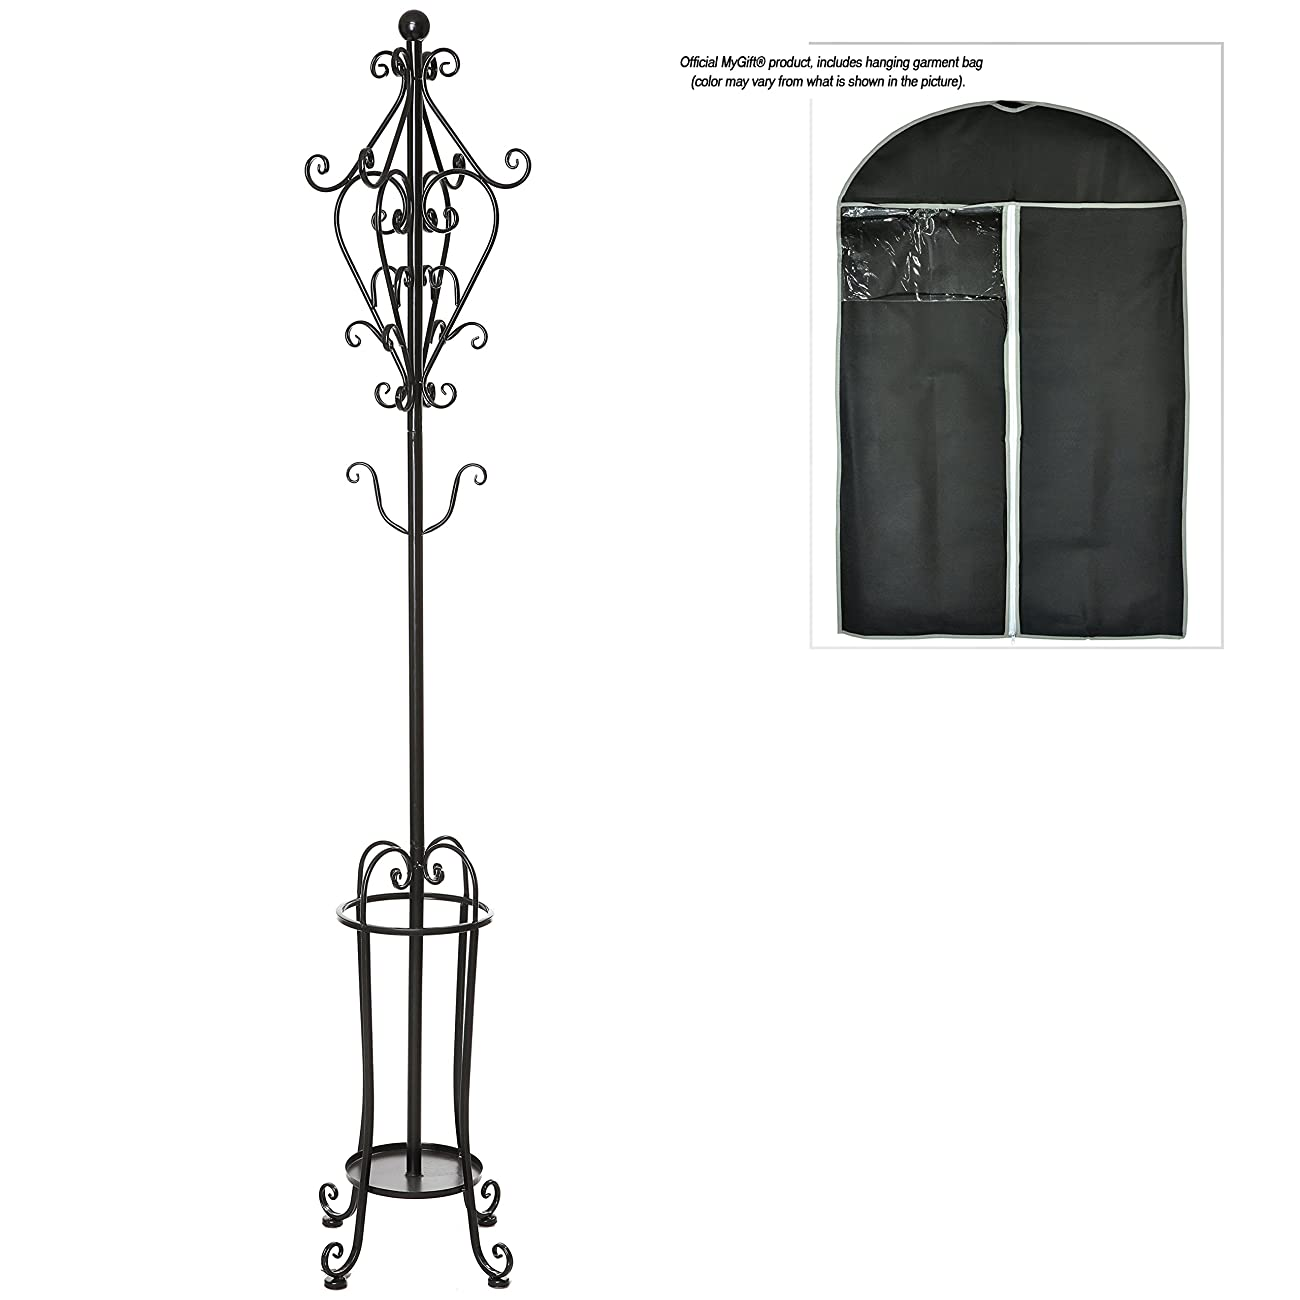 6' Freestanding Vintage Victorian Black Metal Scrollwork Coat Rack / Hat Hook Stand with Umbrella Holder 4